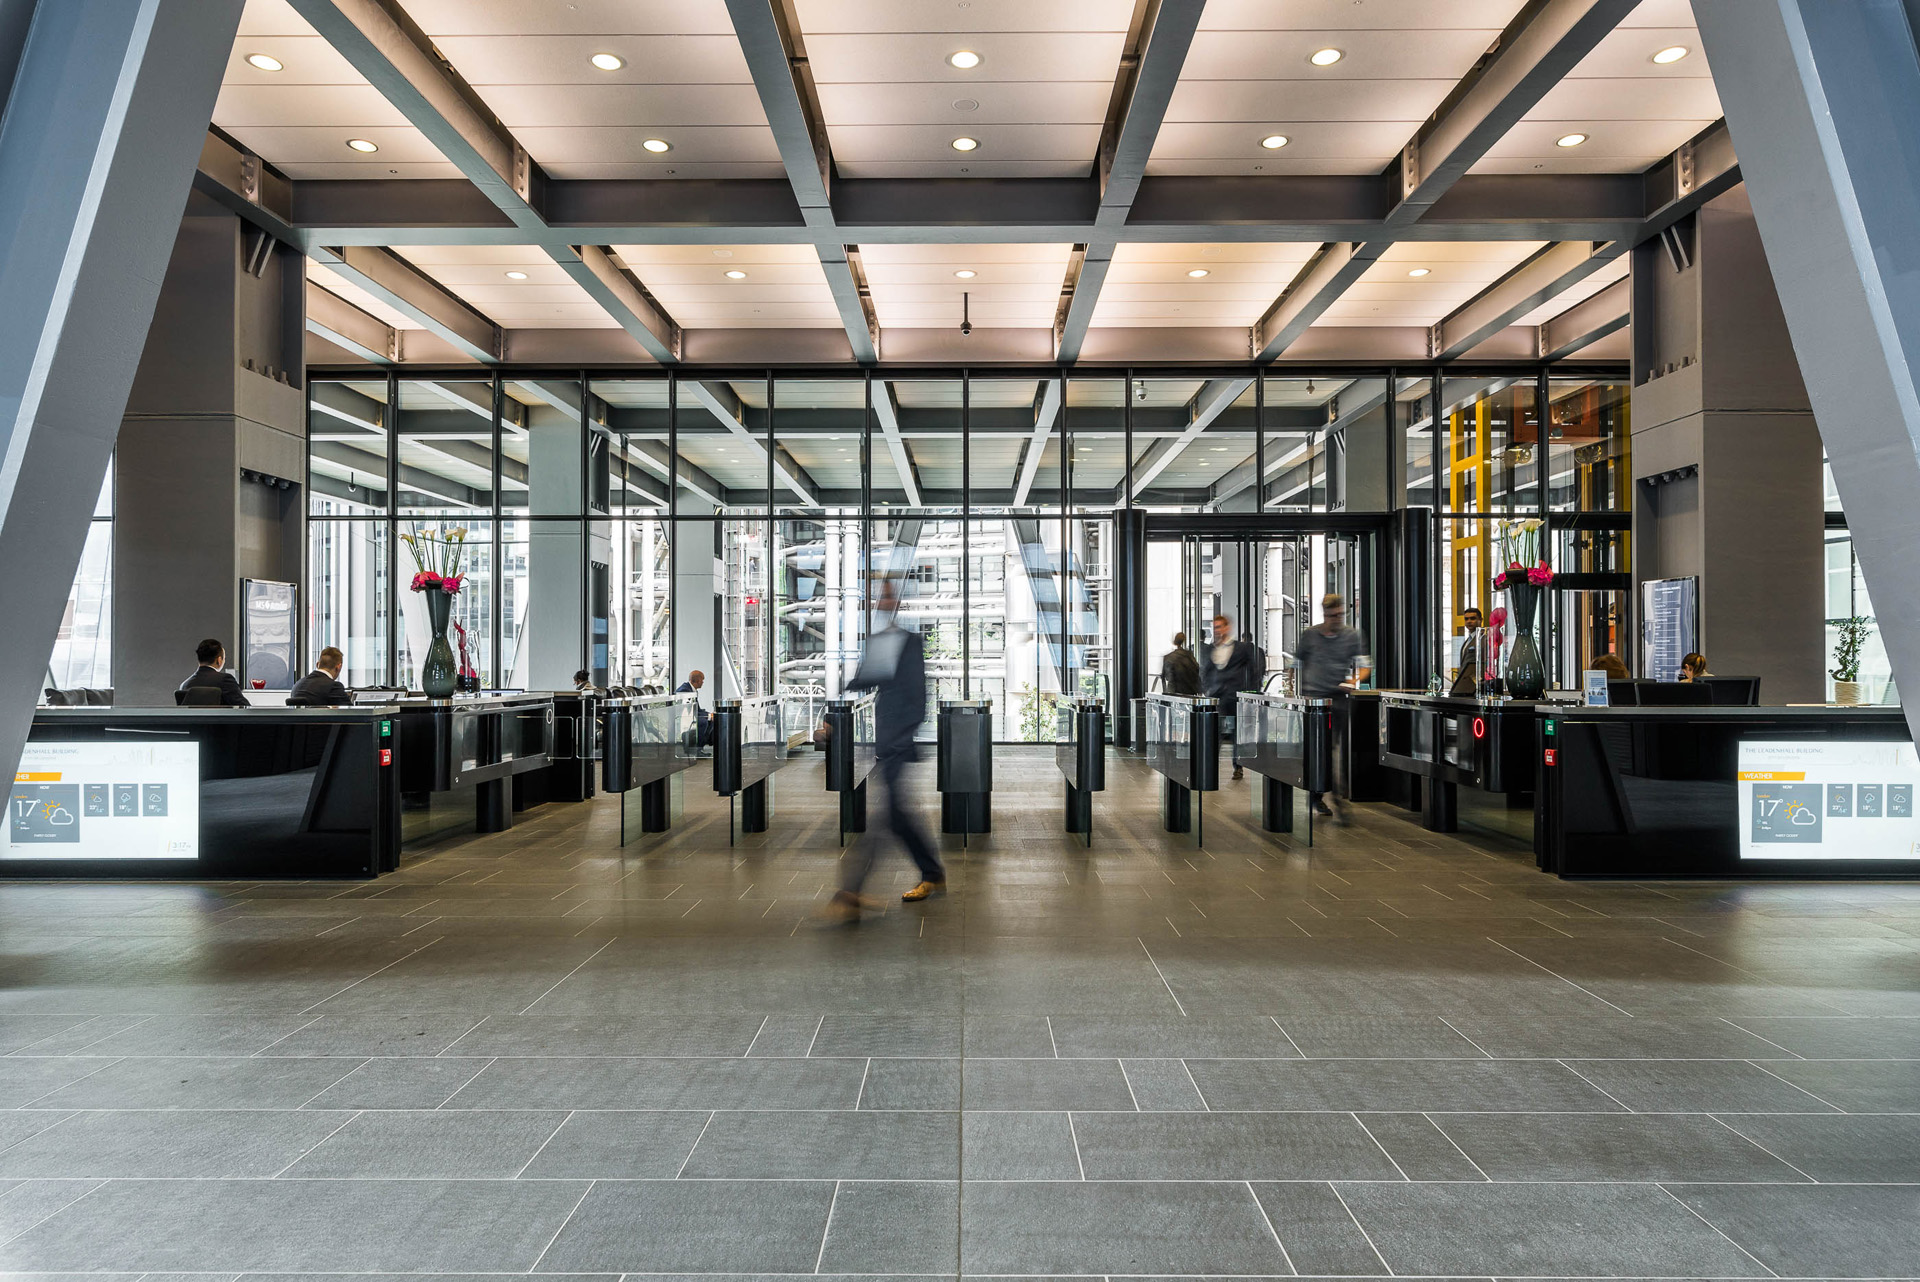 Digital signage for internal communications at The Leadenhall Building